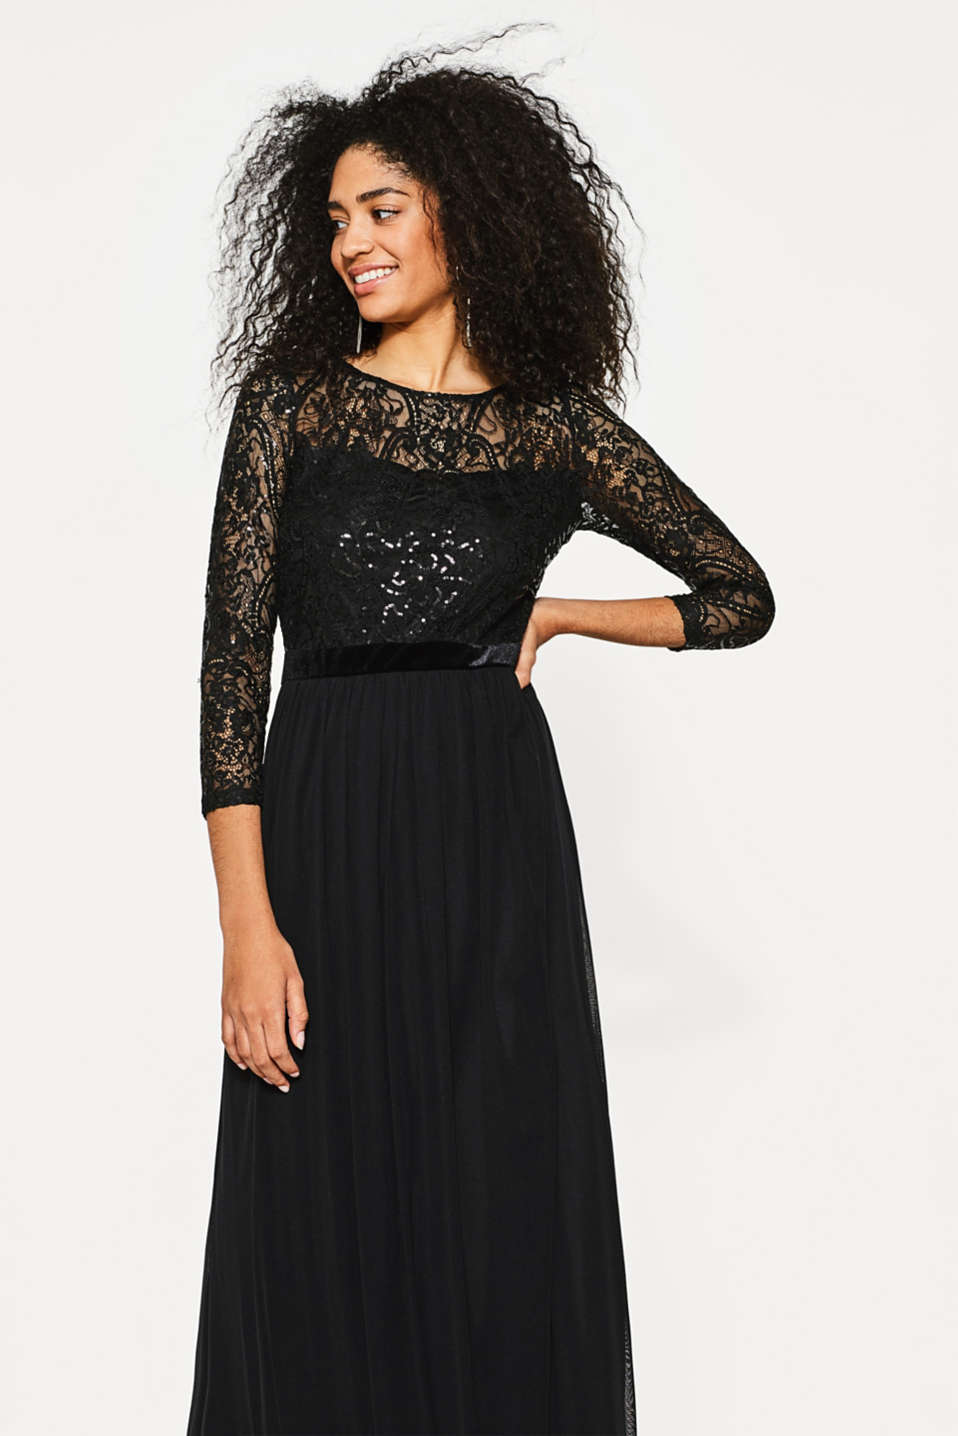 Esprit - Maxi dress in lace, sequins and mesh